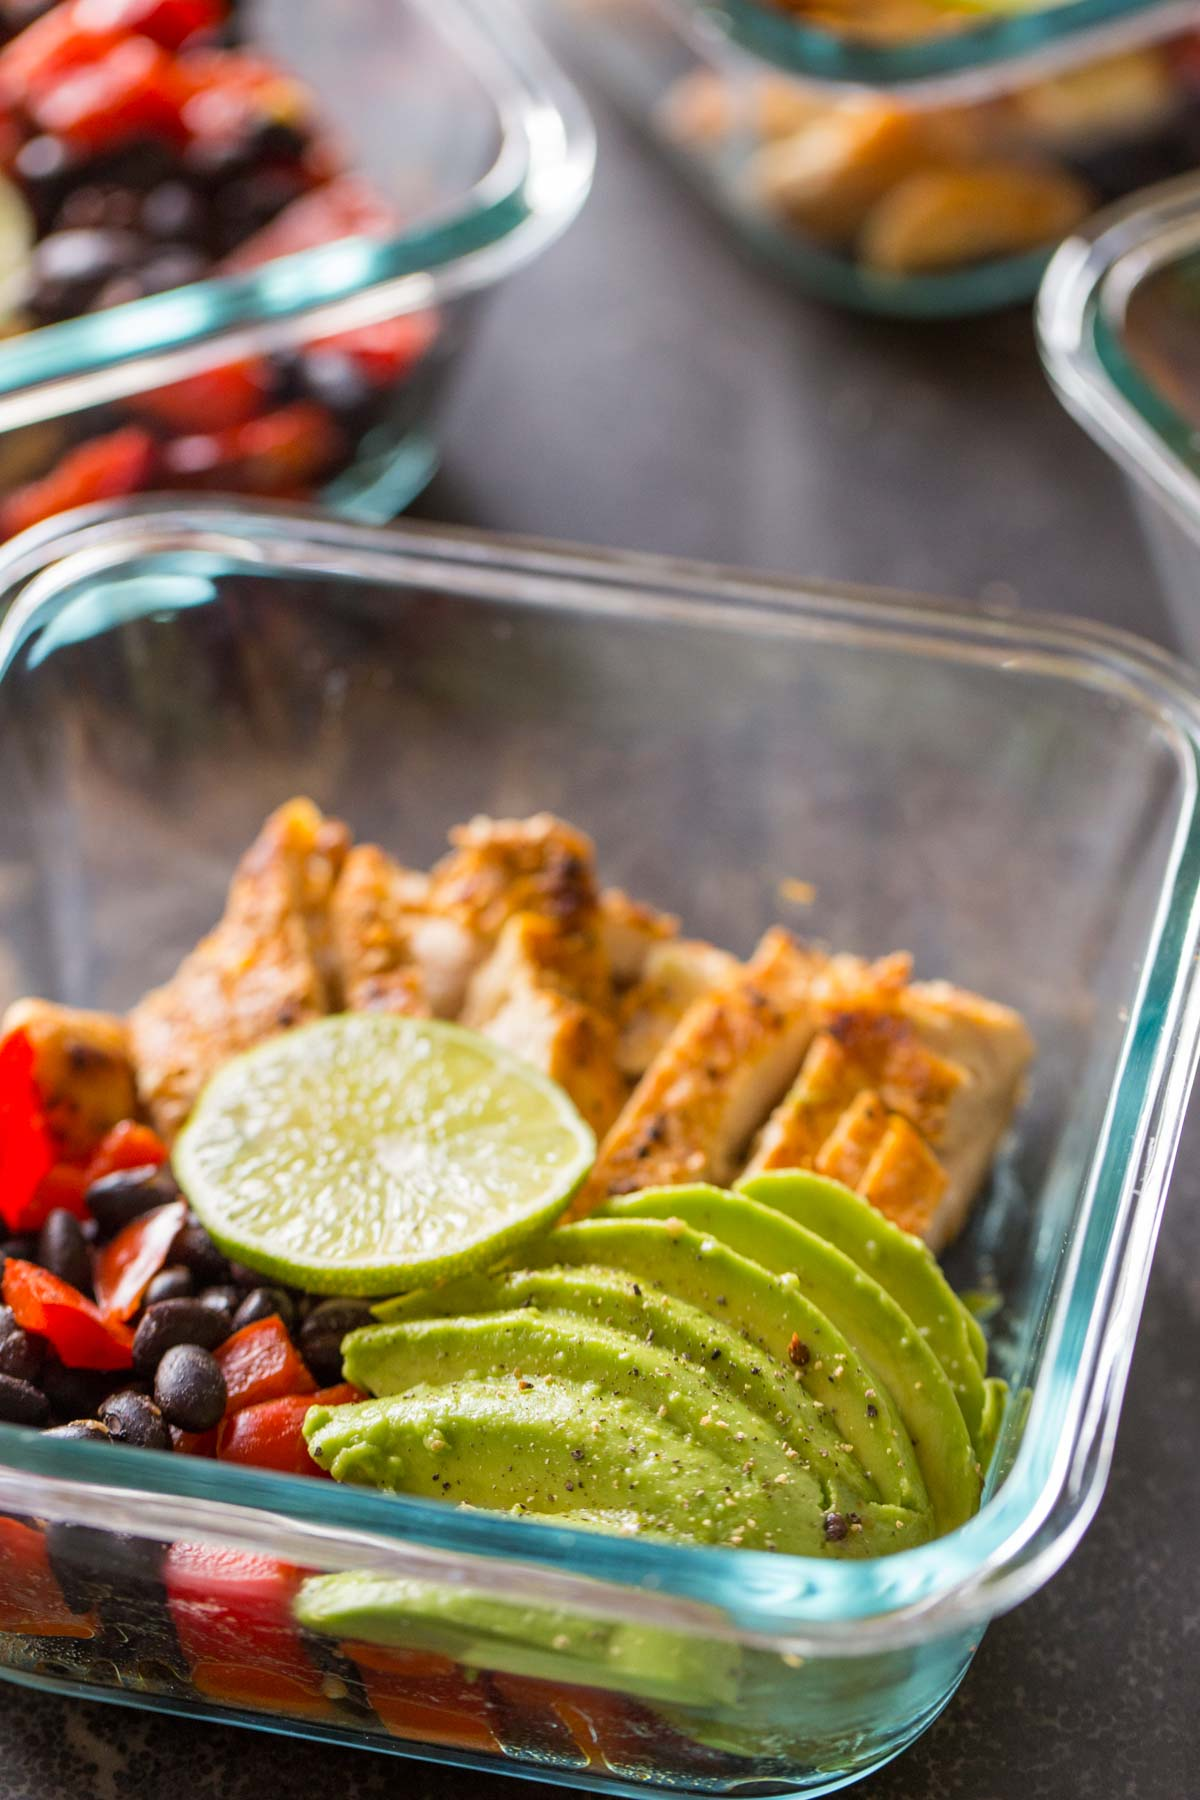 A Healthy Southwestern Chicken Bowl, topped with a slice of lime and some sliced avocado.